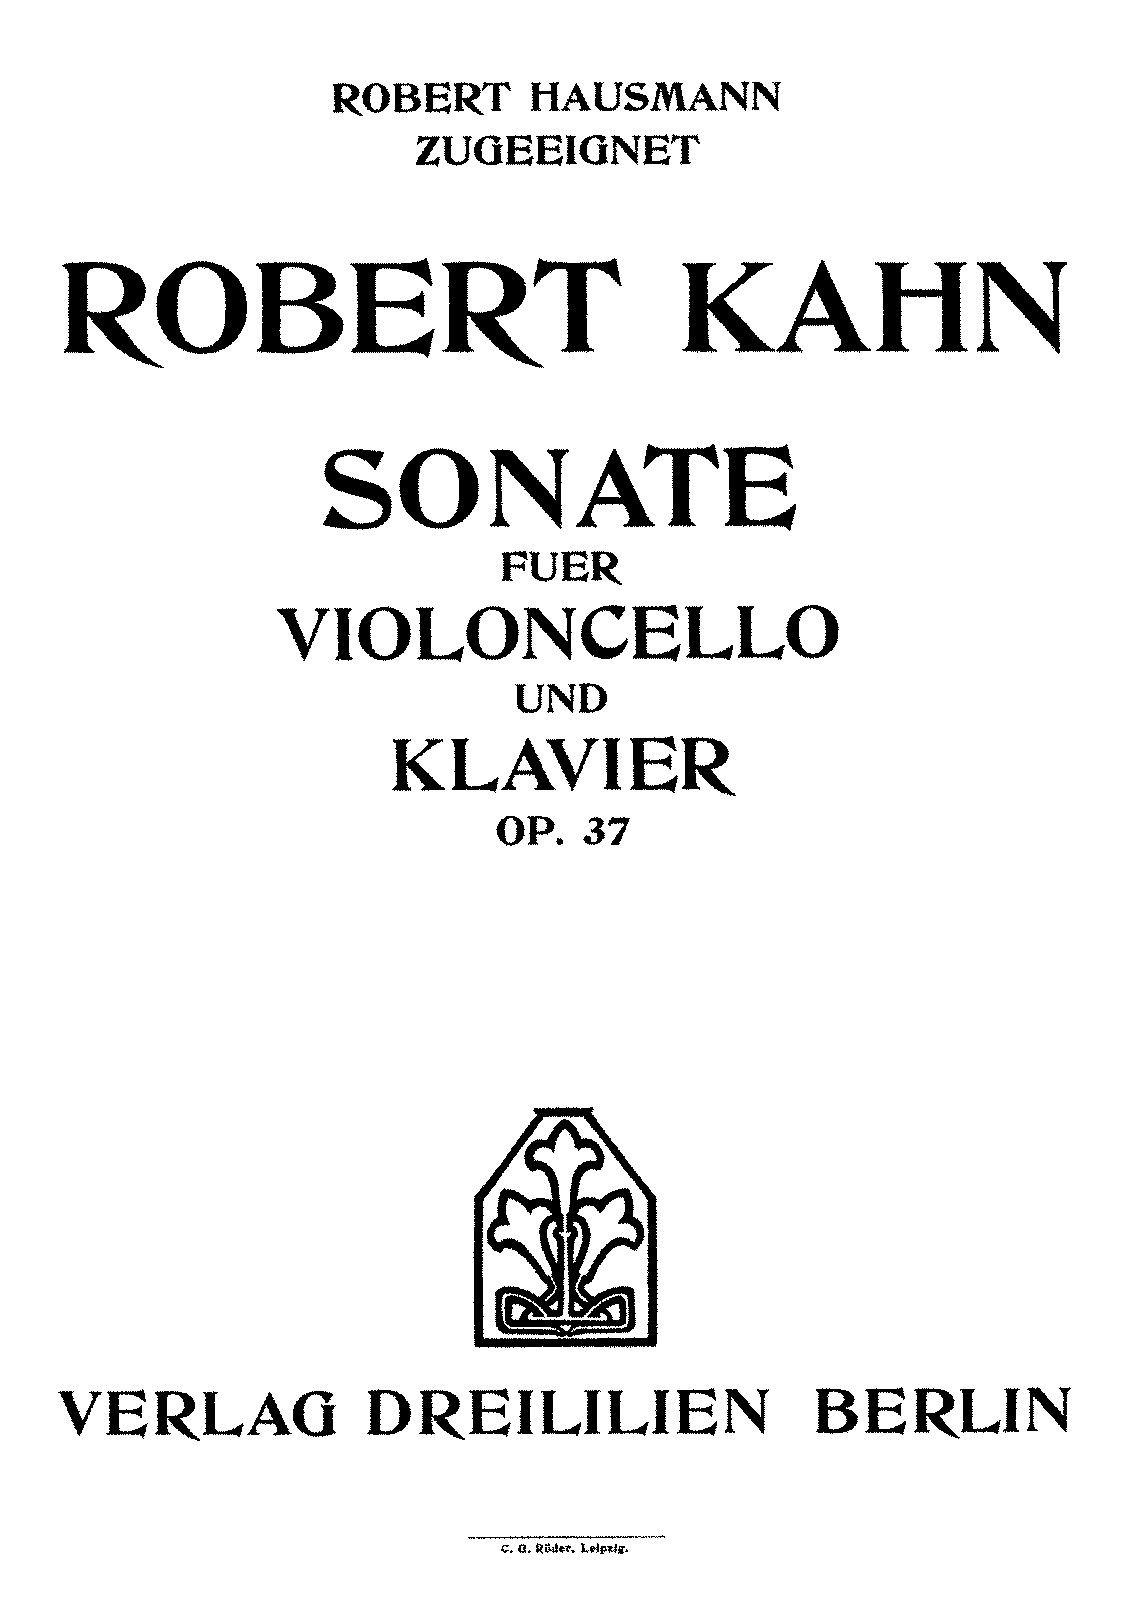 PMLP728888-$Kahn Robert Cello-Sonate I in F op. 37 PS A4 UDW(2).pdf